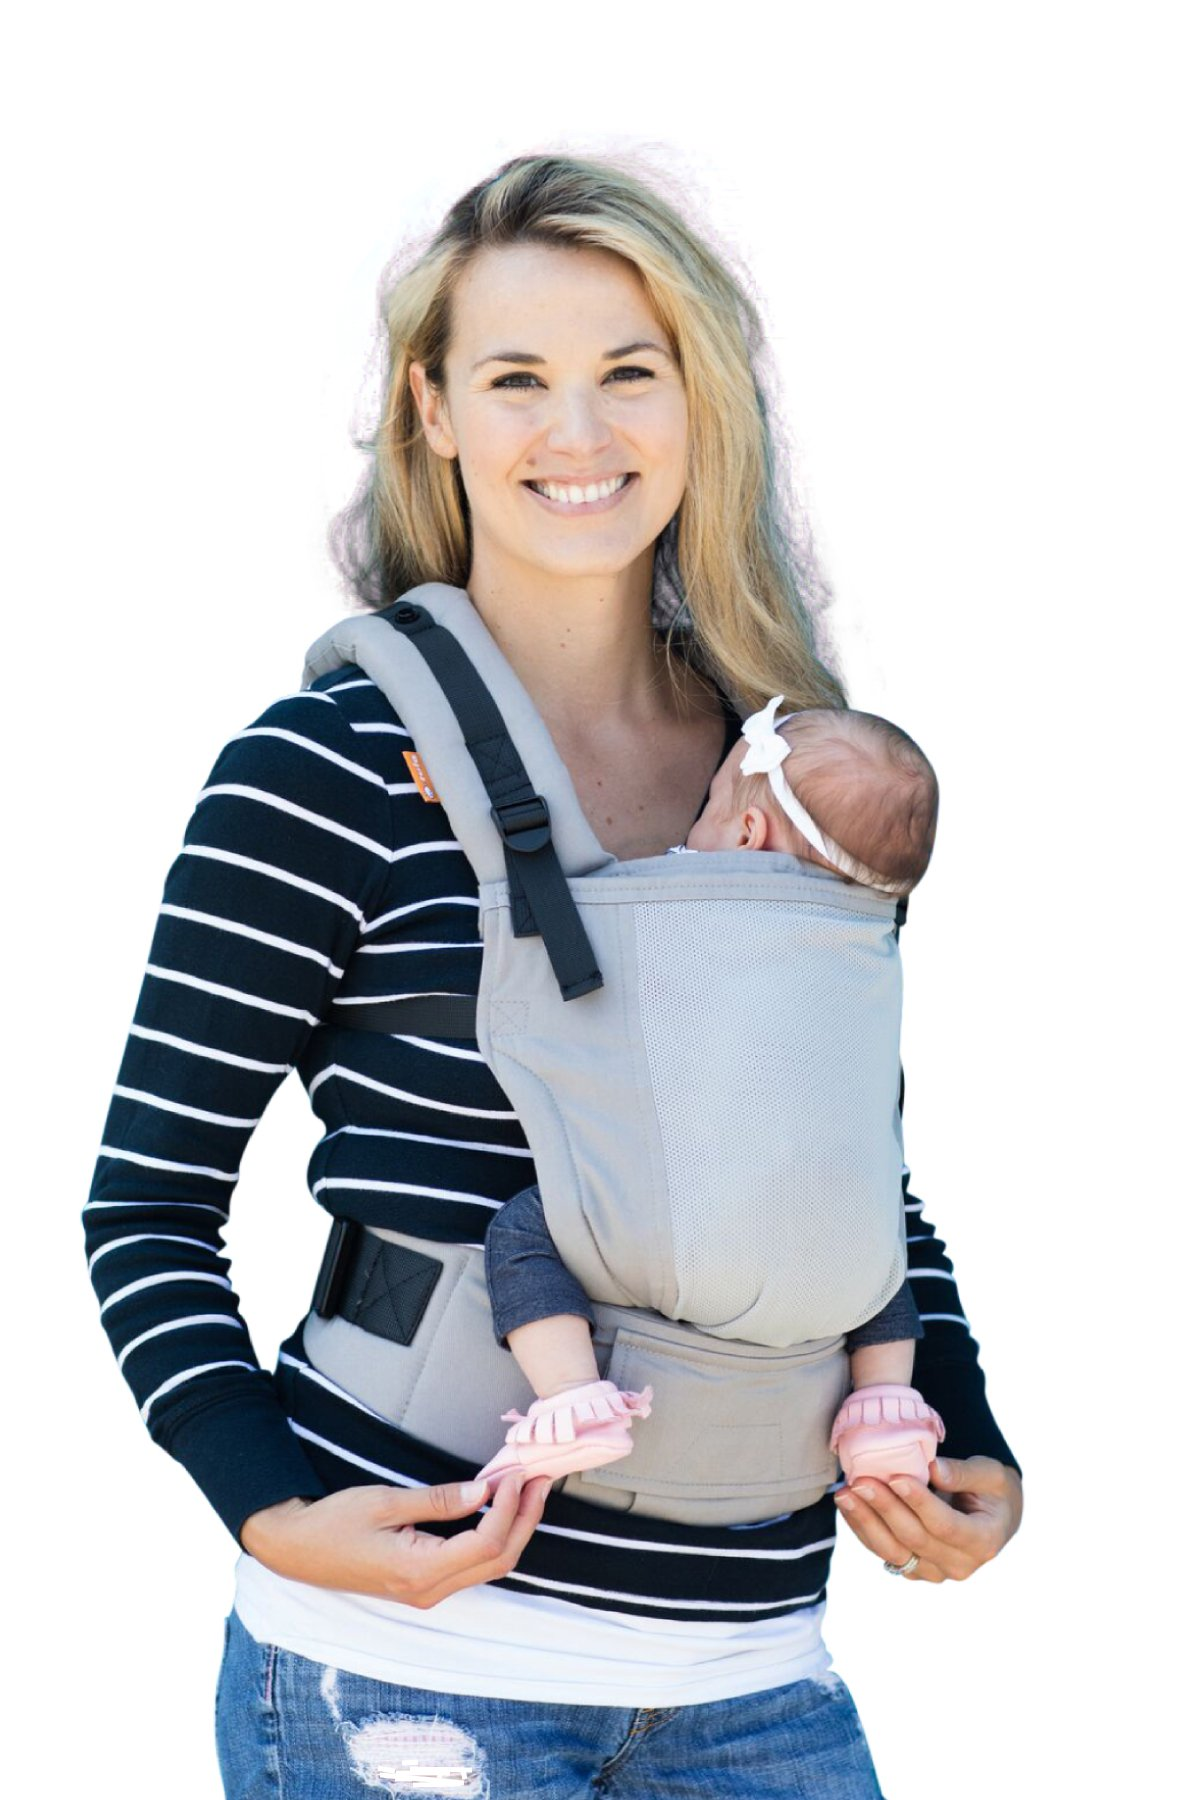 Baby Tula Free-to-Grow Coast Mesh Baby Carrier 7 – 45 lb, Adjustable Newborn to Toddler Carrier, Ergonomic Inward Front and Back Carry, Lightweight – Coast Overcast, Light Gray with Light Gray Mesh